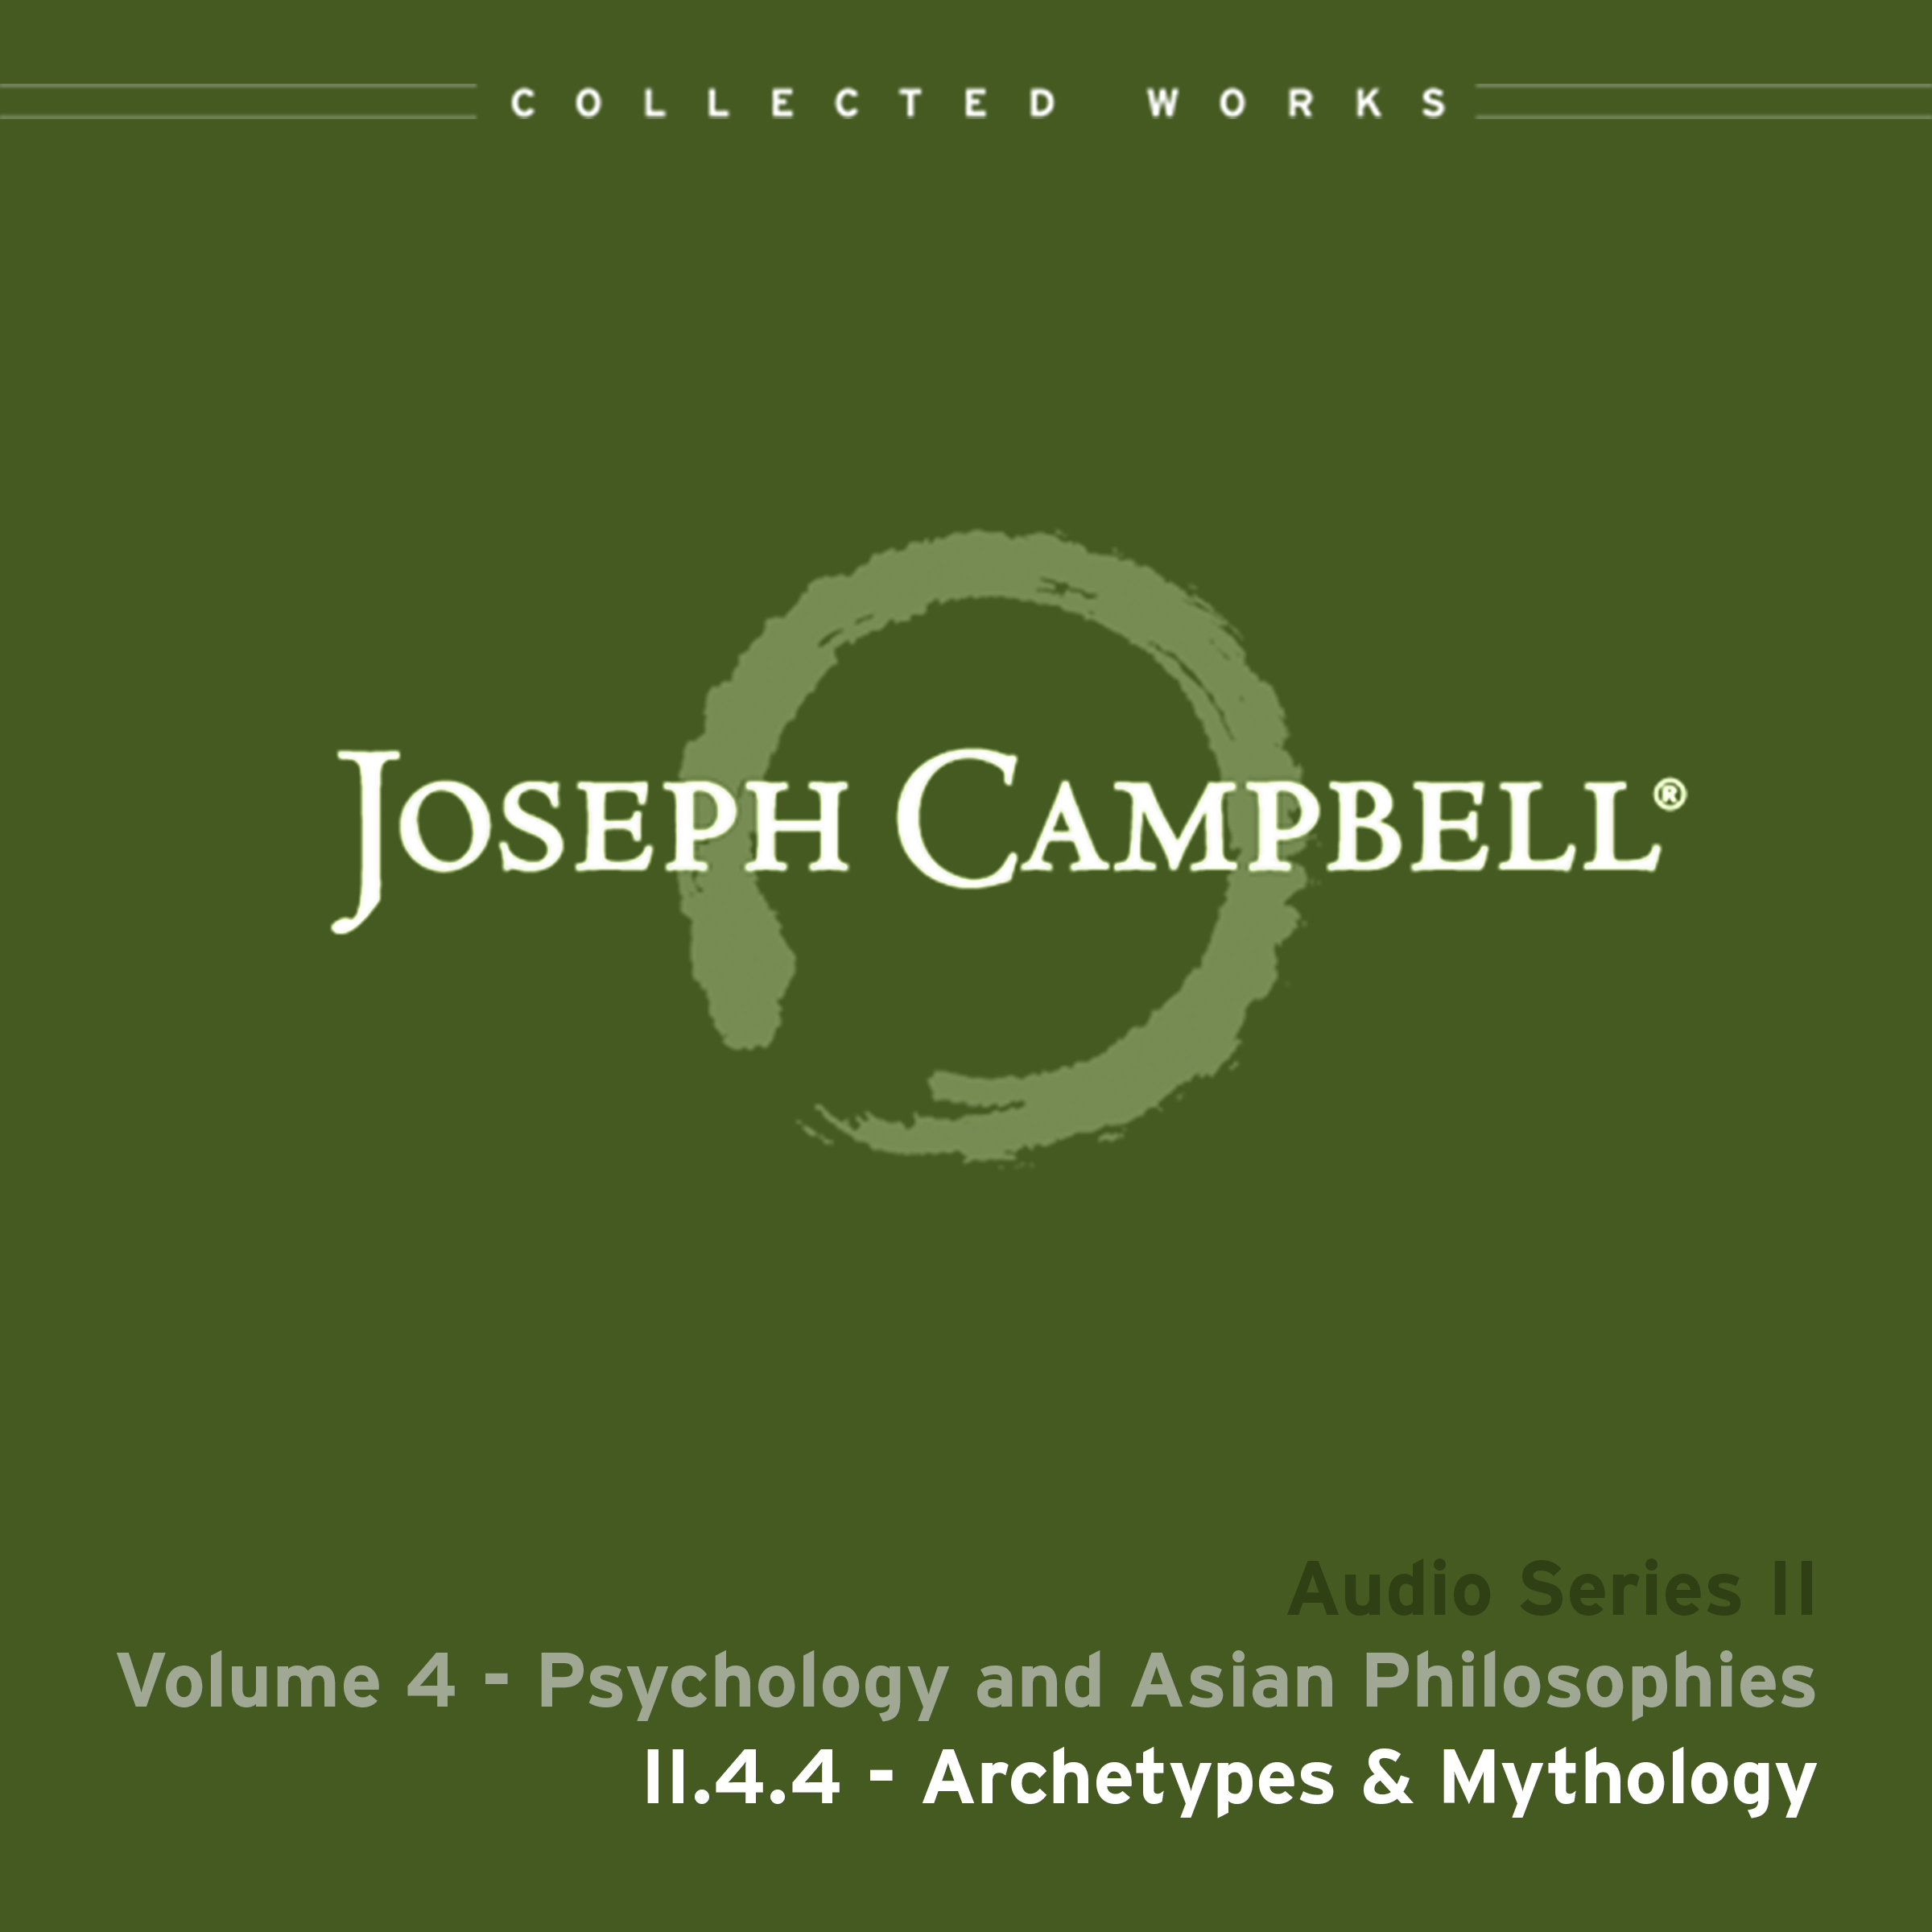 Audio: Lecture II.4.4 - Archetypes & Mythology